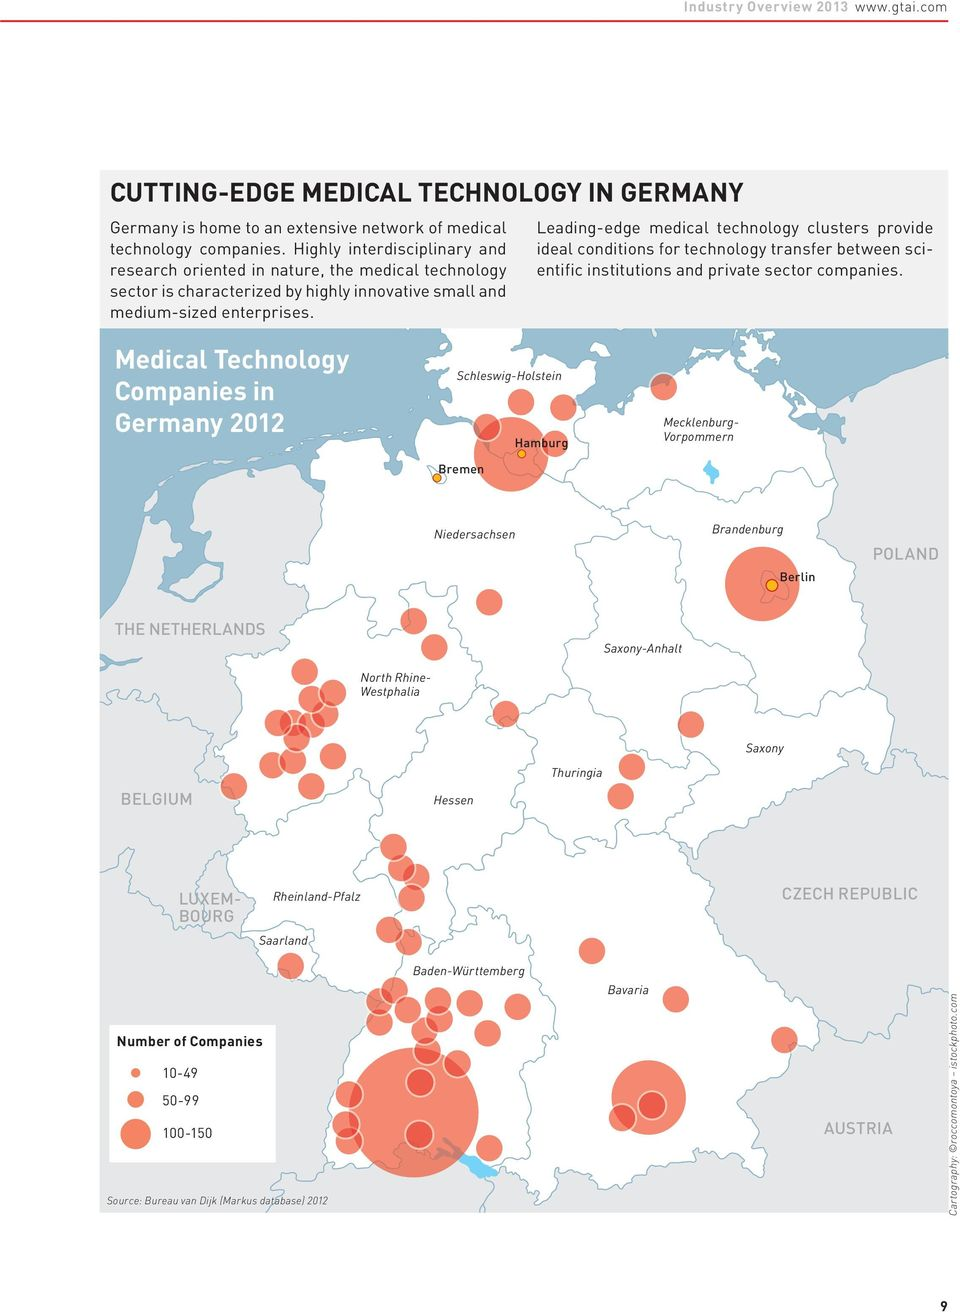 Leading-edge medical technology clusters provide ideal conditions for technology transfer between scientific institutions and private sector companies.